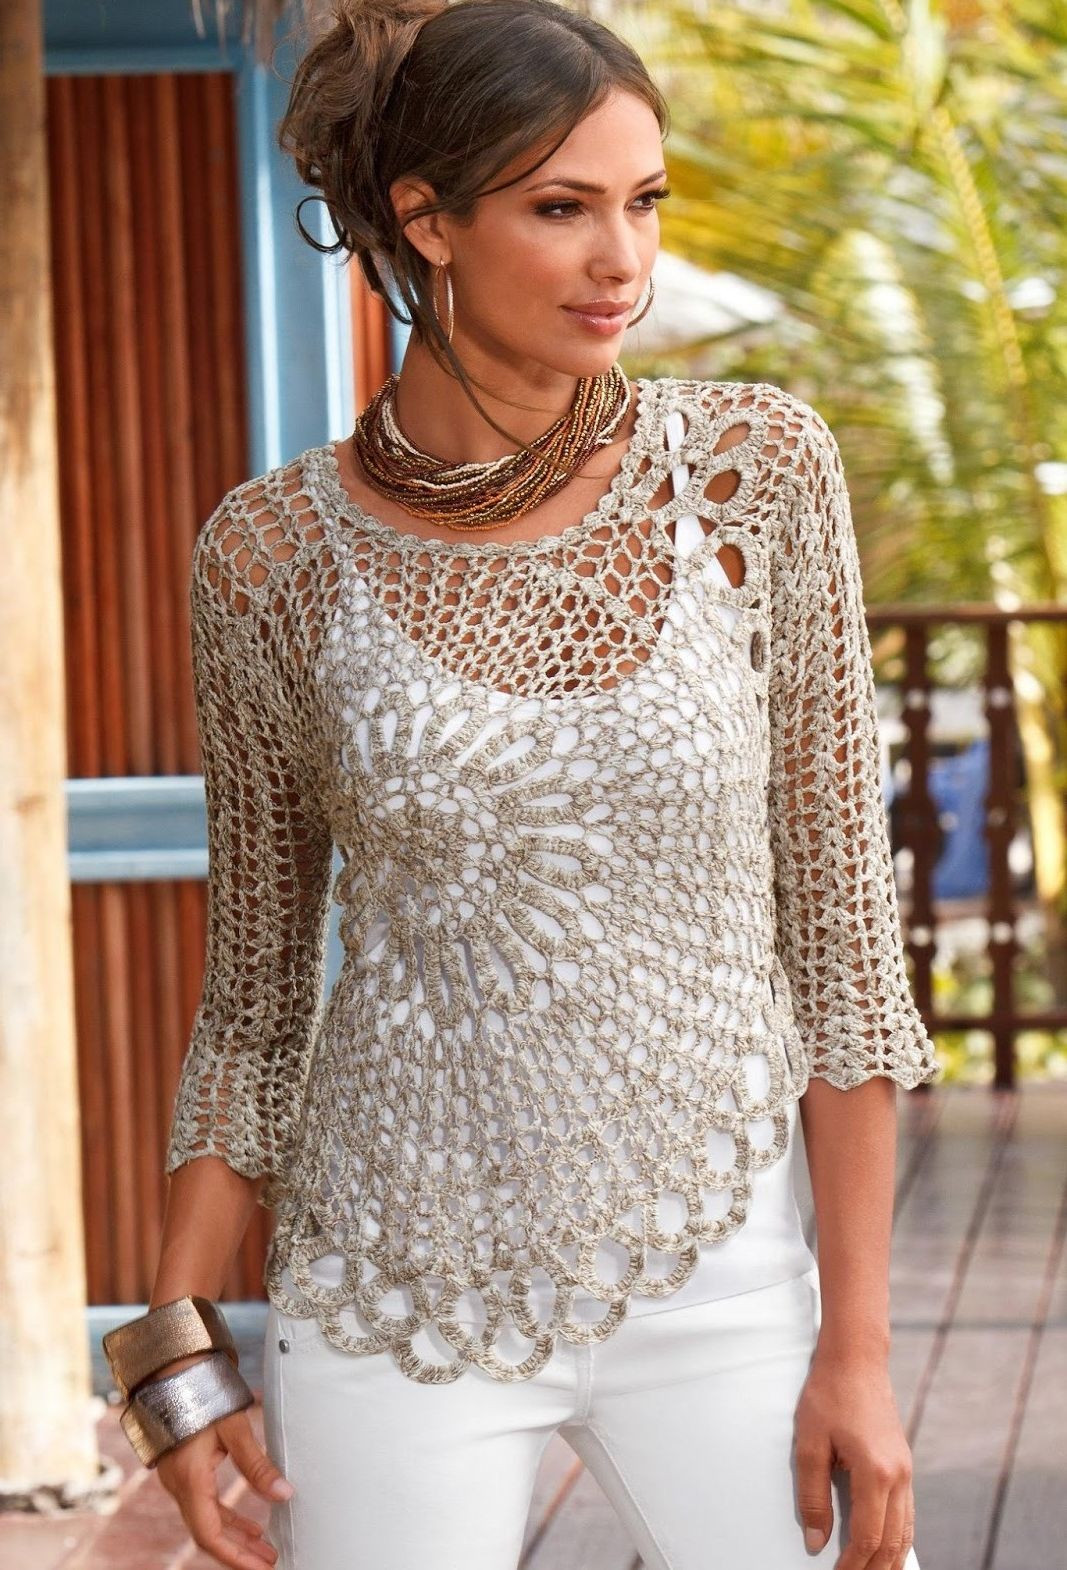 how to wear crochet blouse